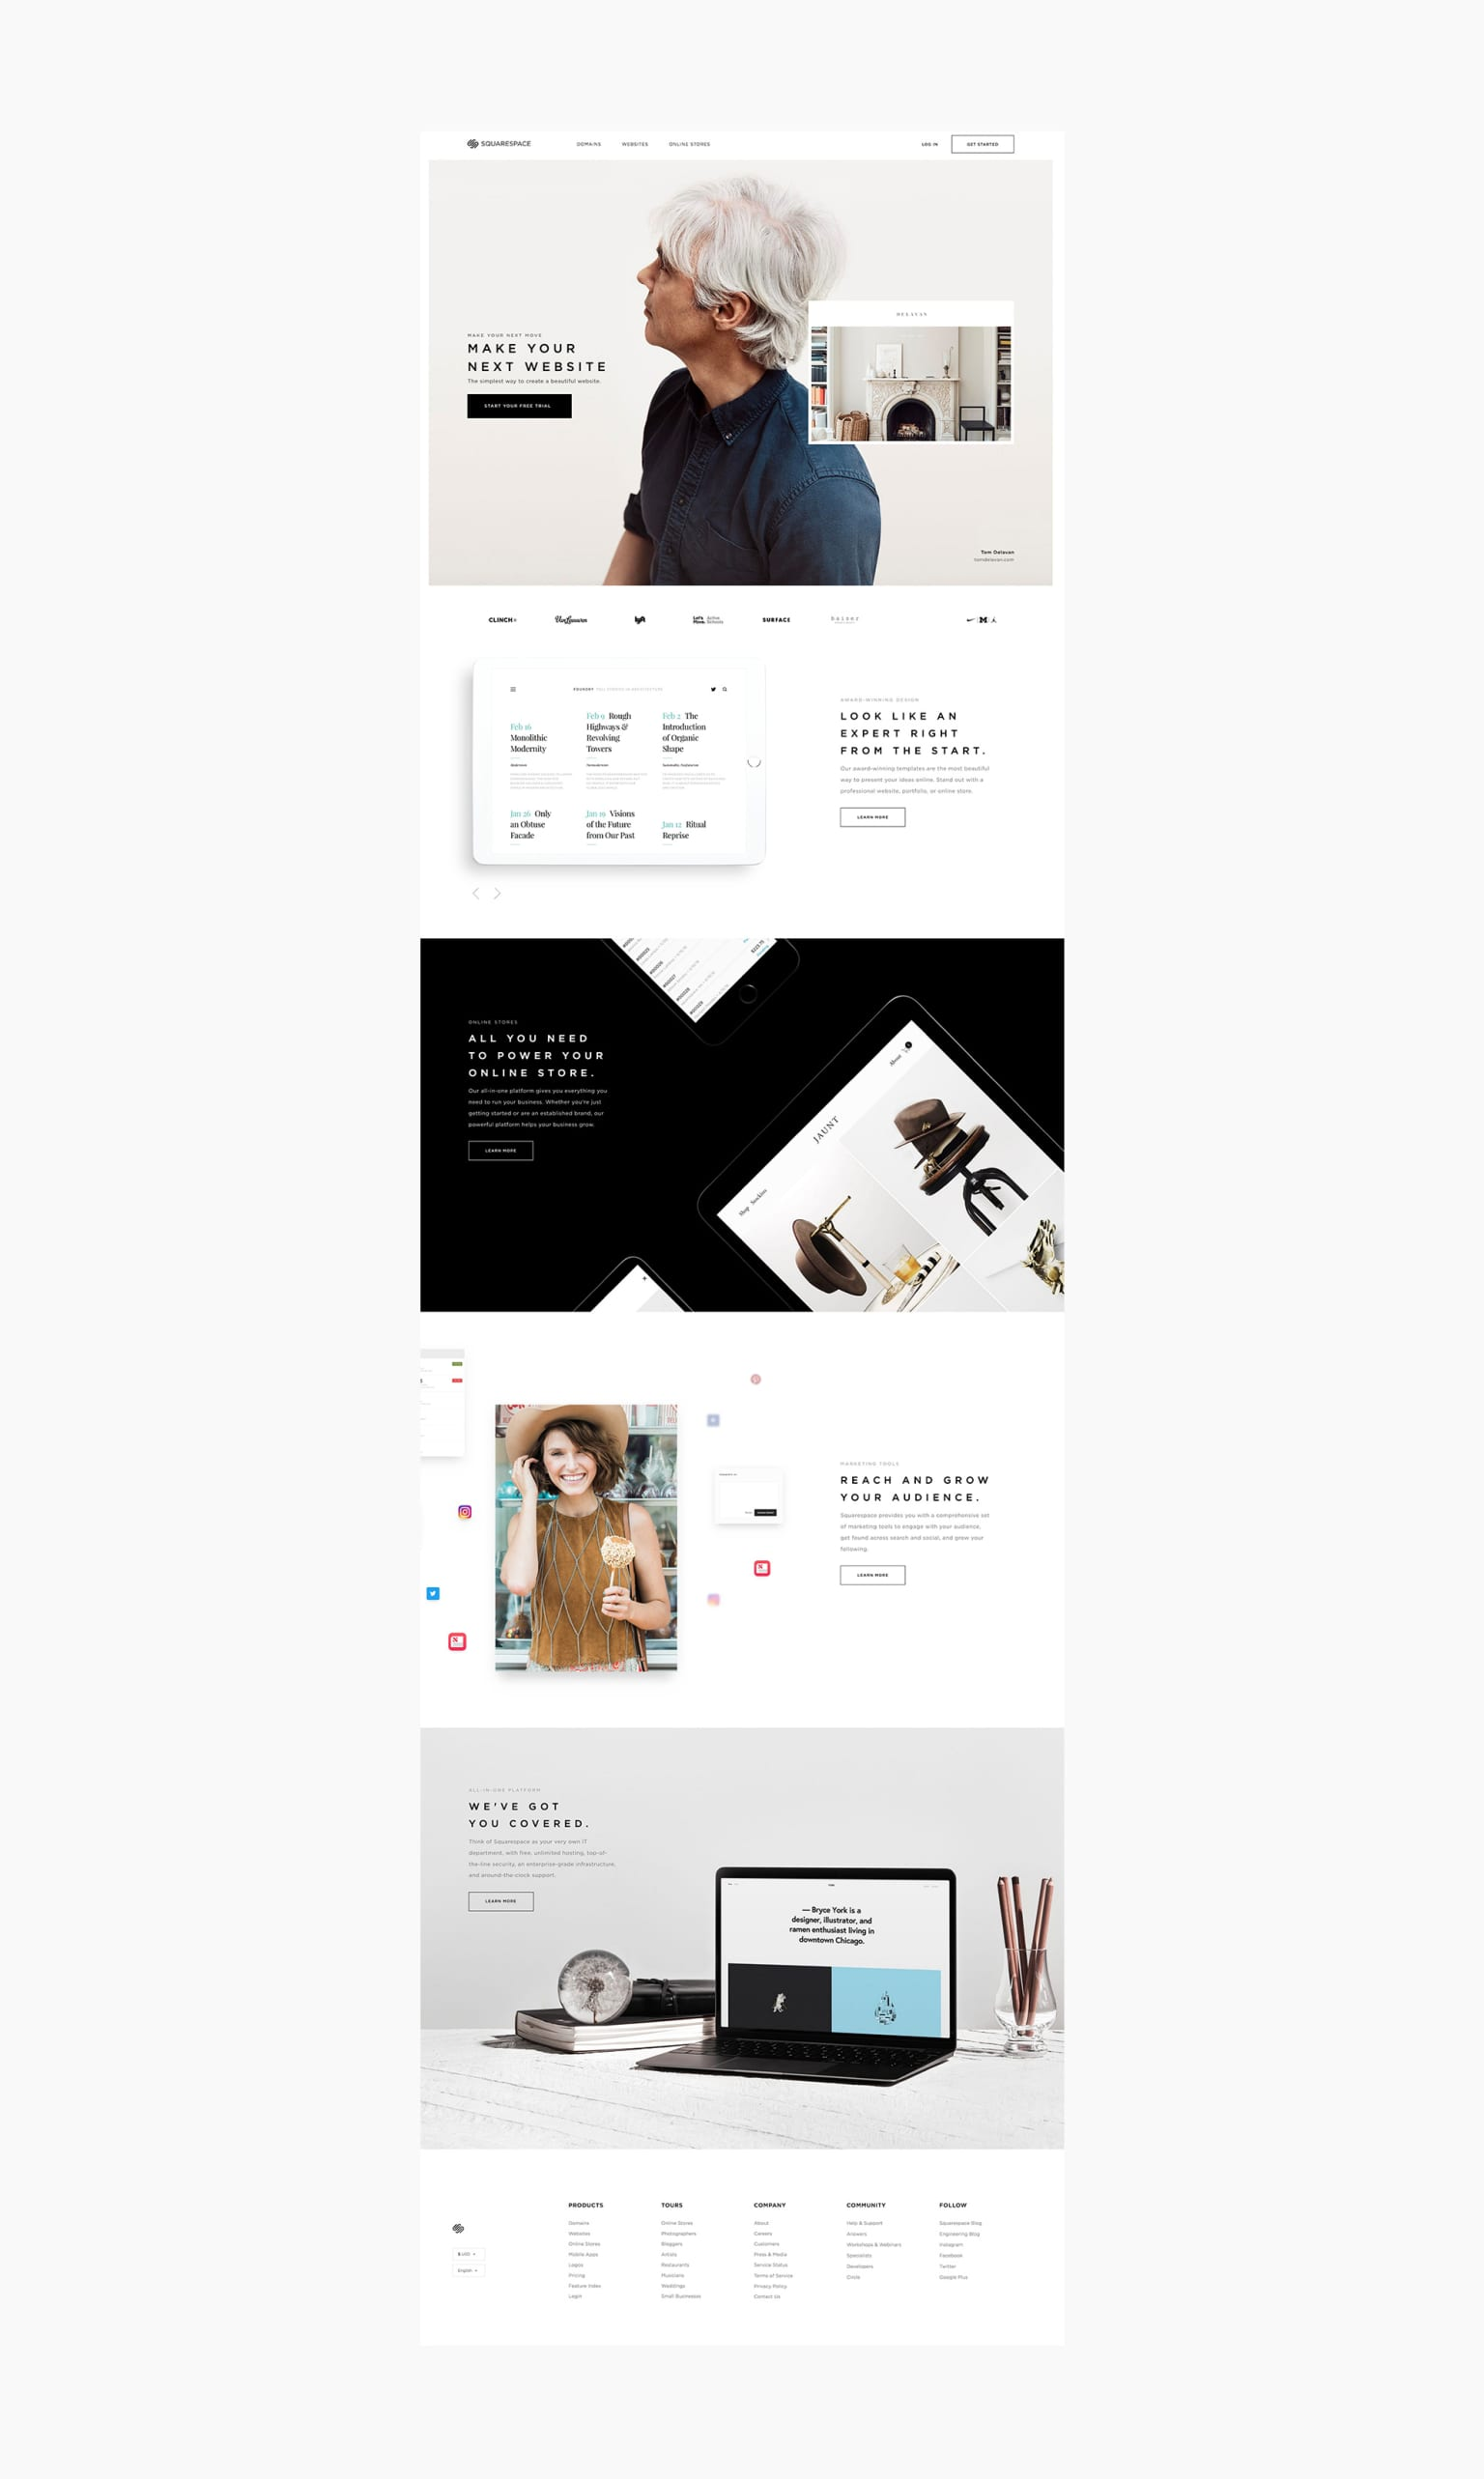 Squarespace Re-Design